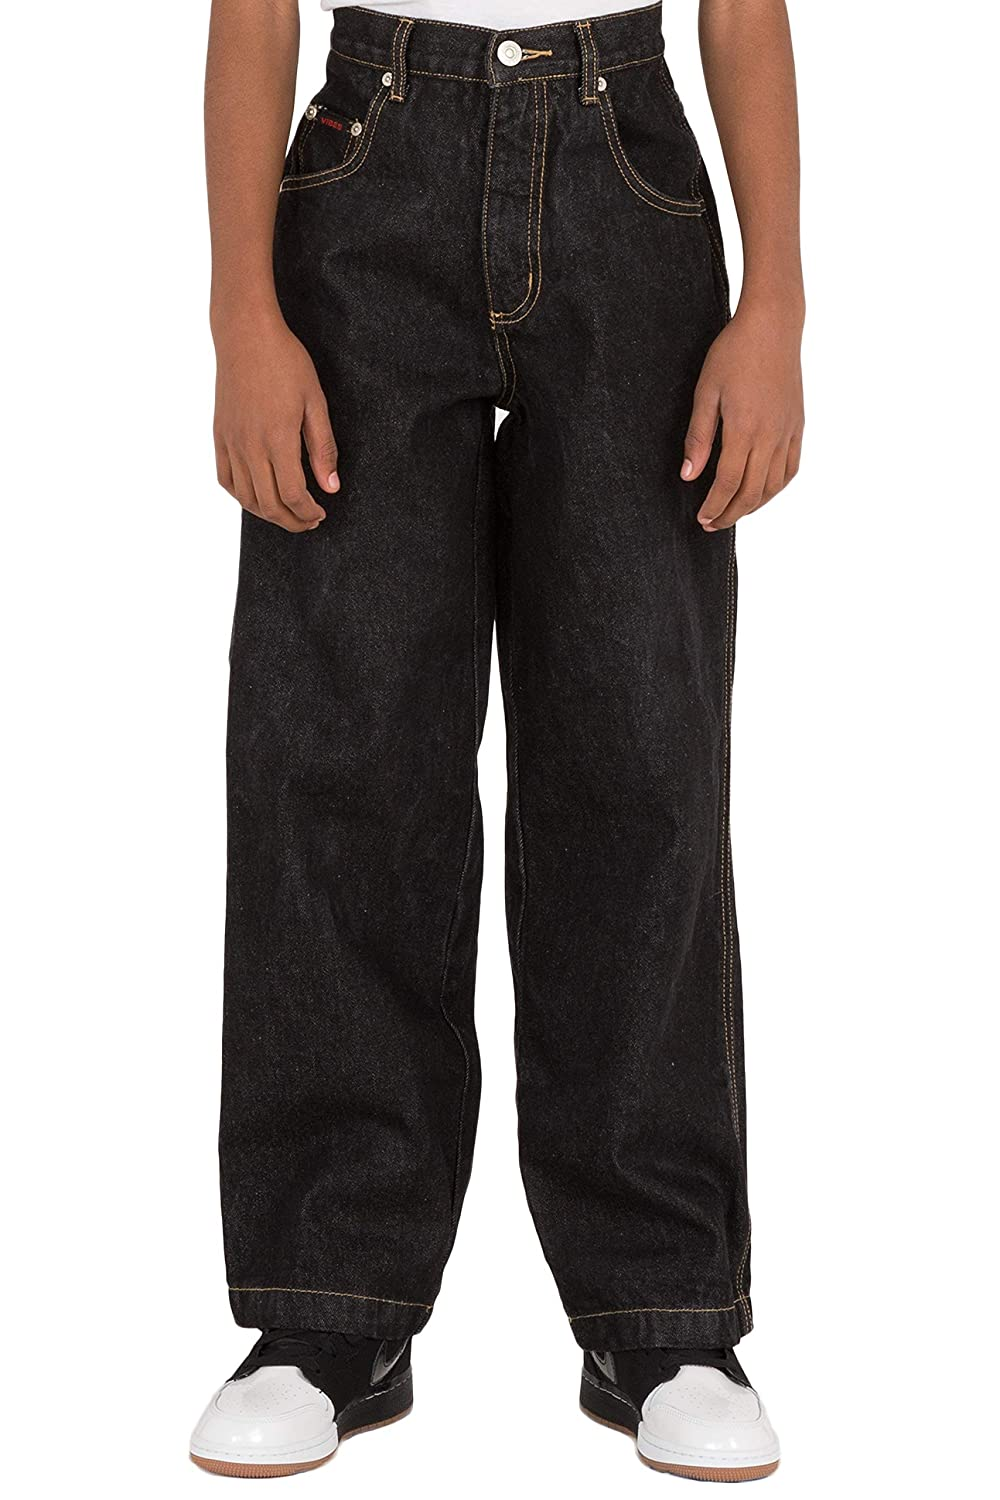 64a4581852 This comfortable casual carpenter style denim jeans is featured with 2  front scoop pockets